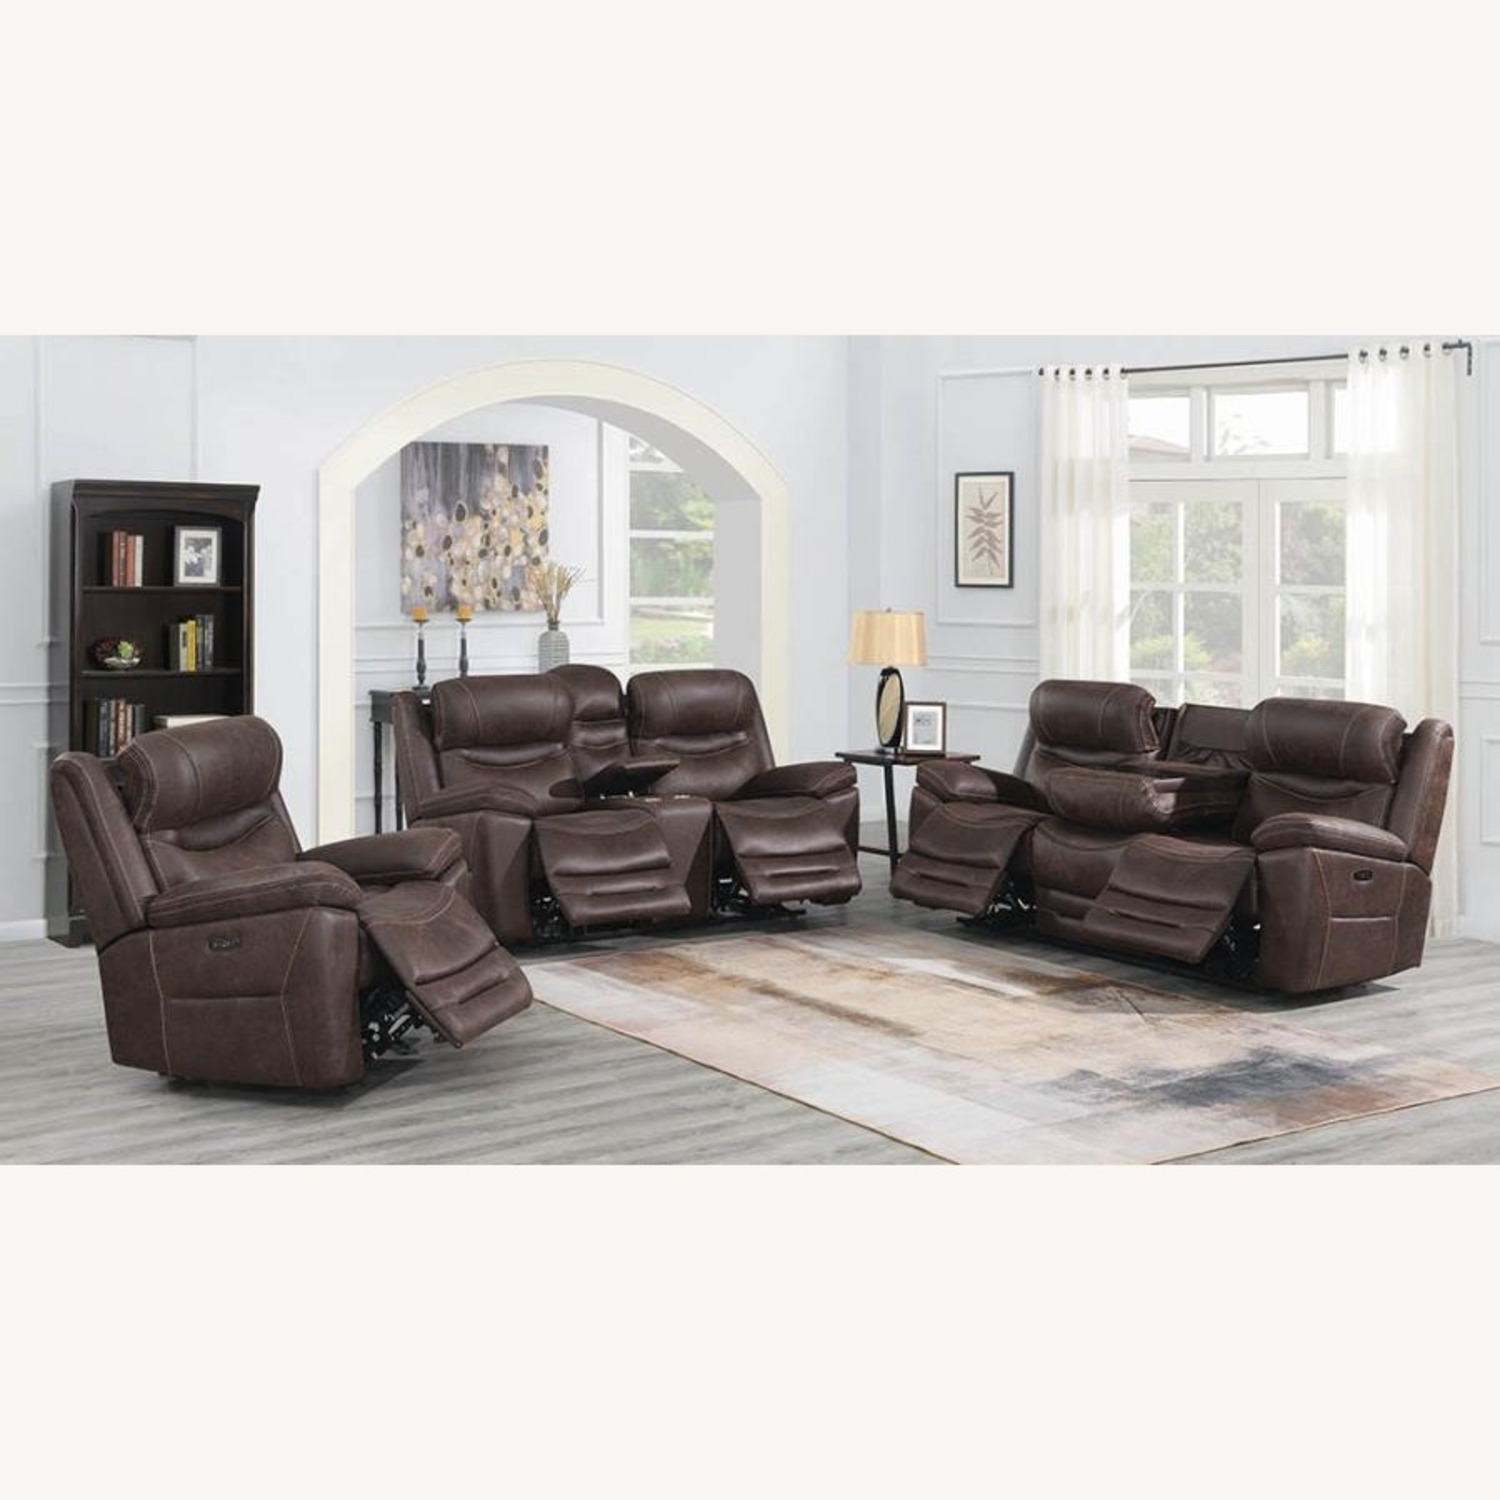 Power Loveseat Recliner In Chocolate Upholstery - image-7